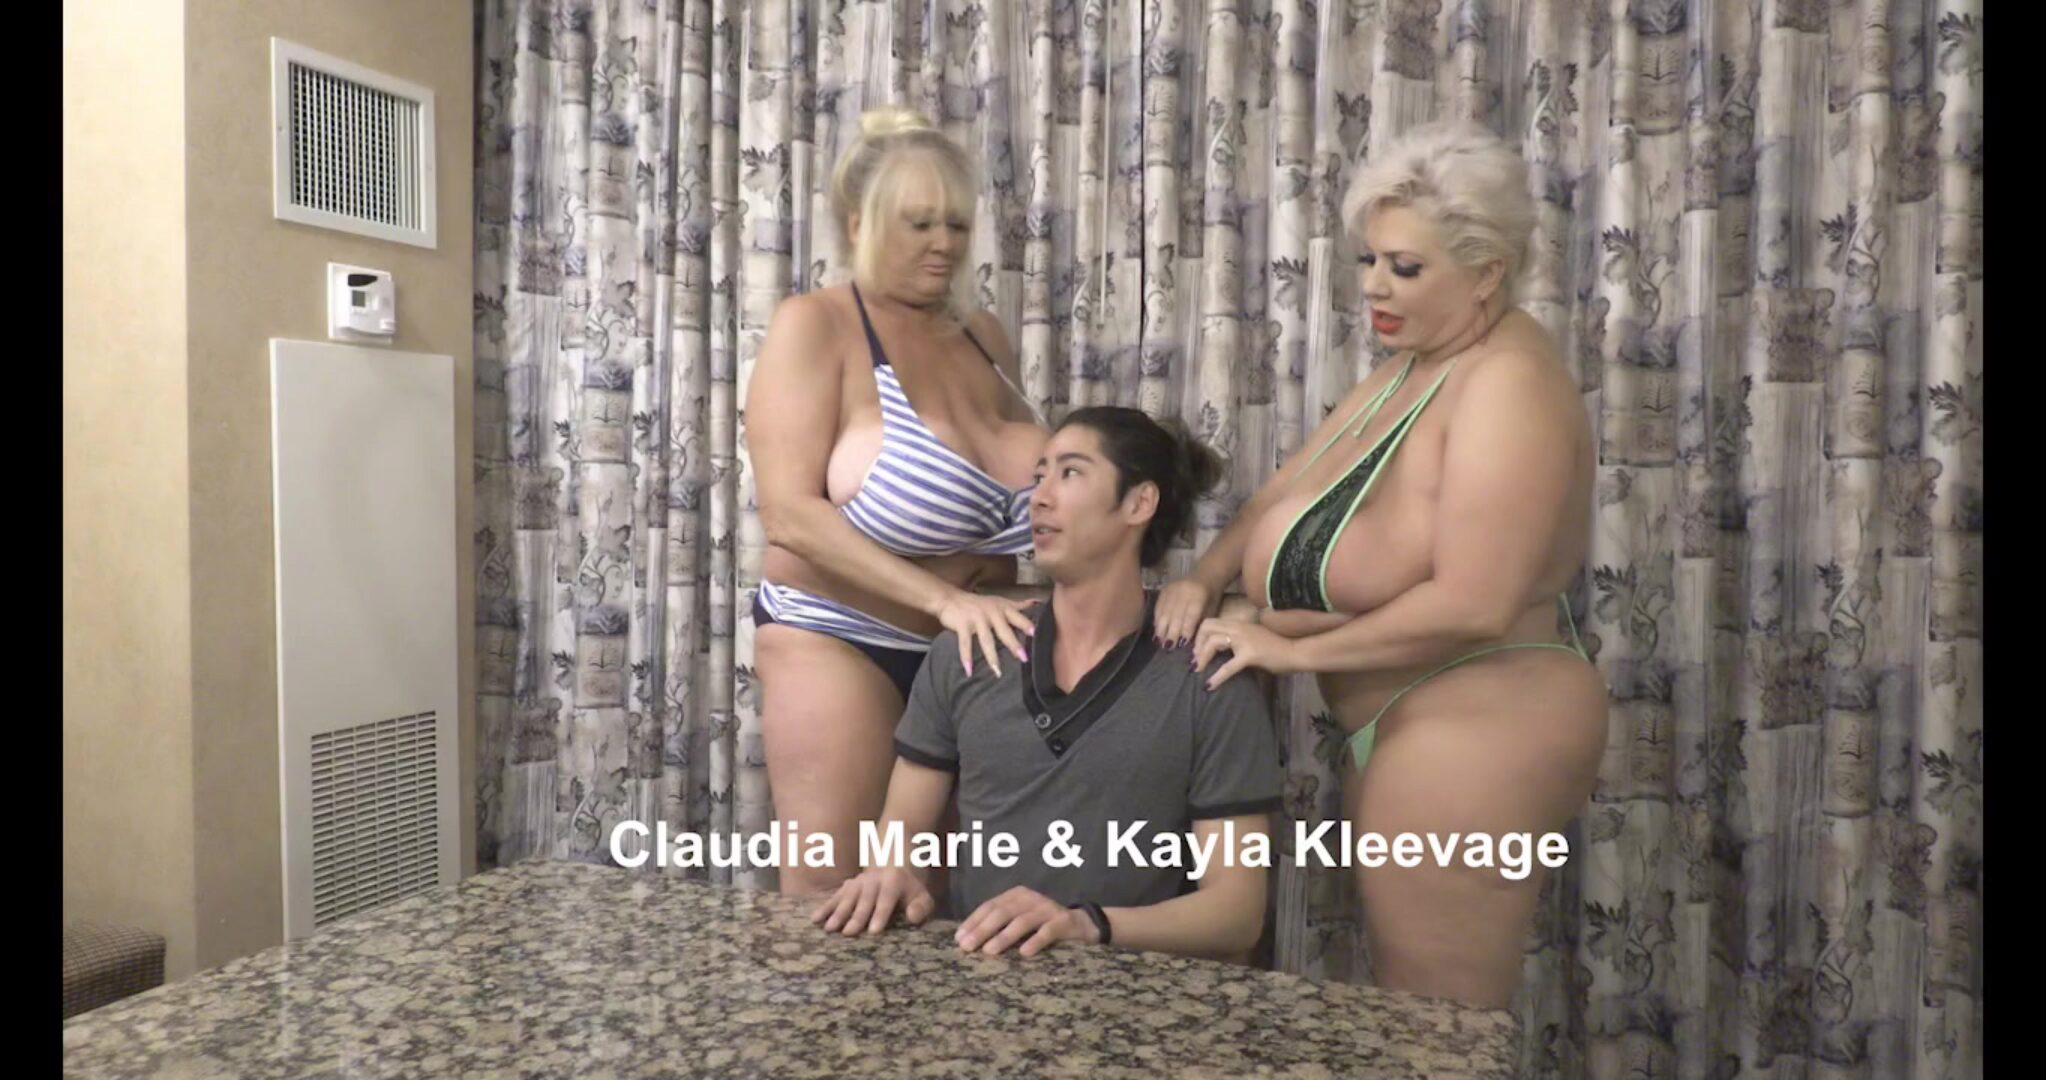 Boy Fucks Saggy Tit Fat Ass Prostitutes Kayla Kleevage and Claudia Marie banged rock-hard by a juvenile lad